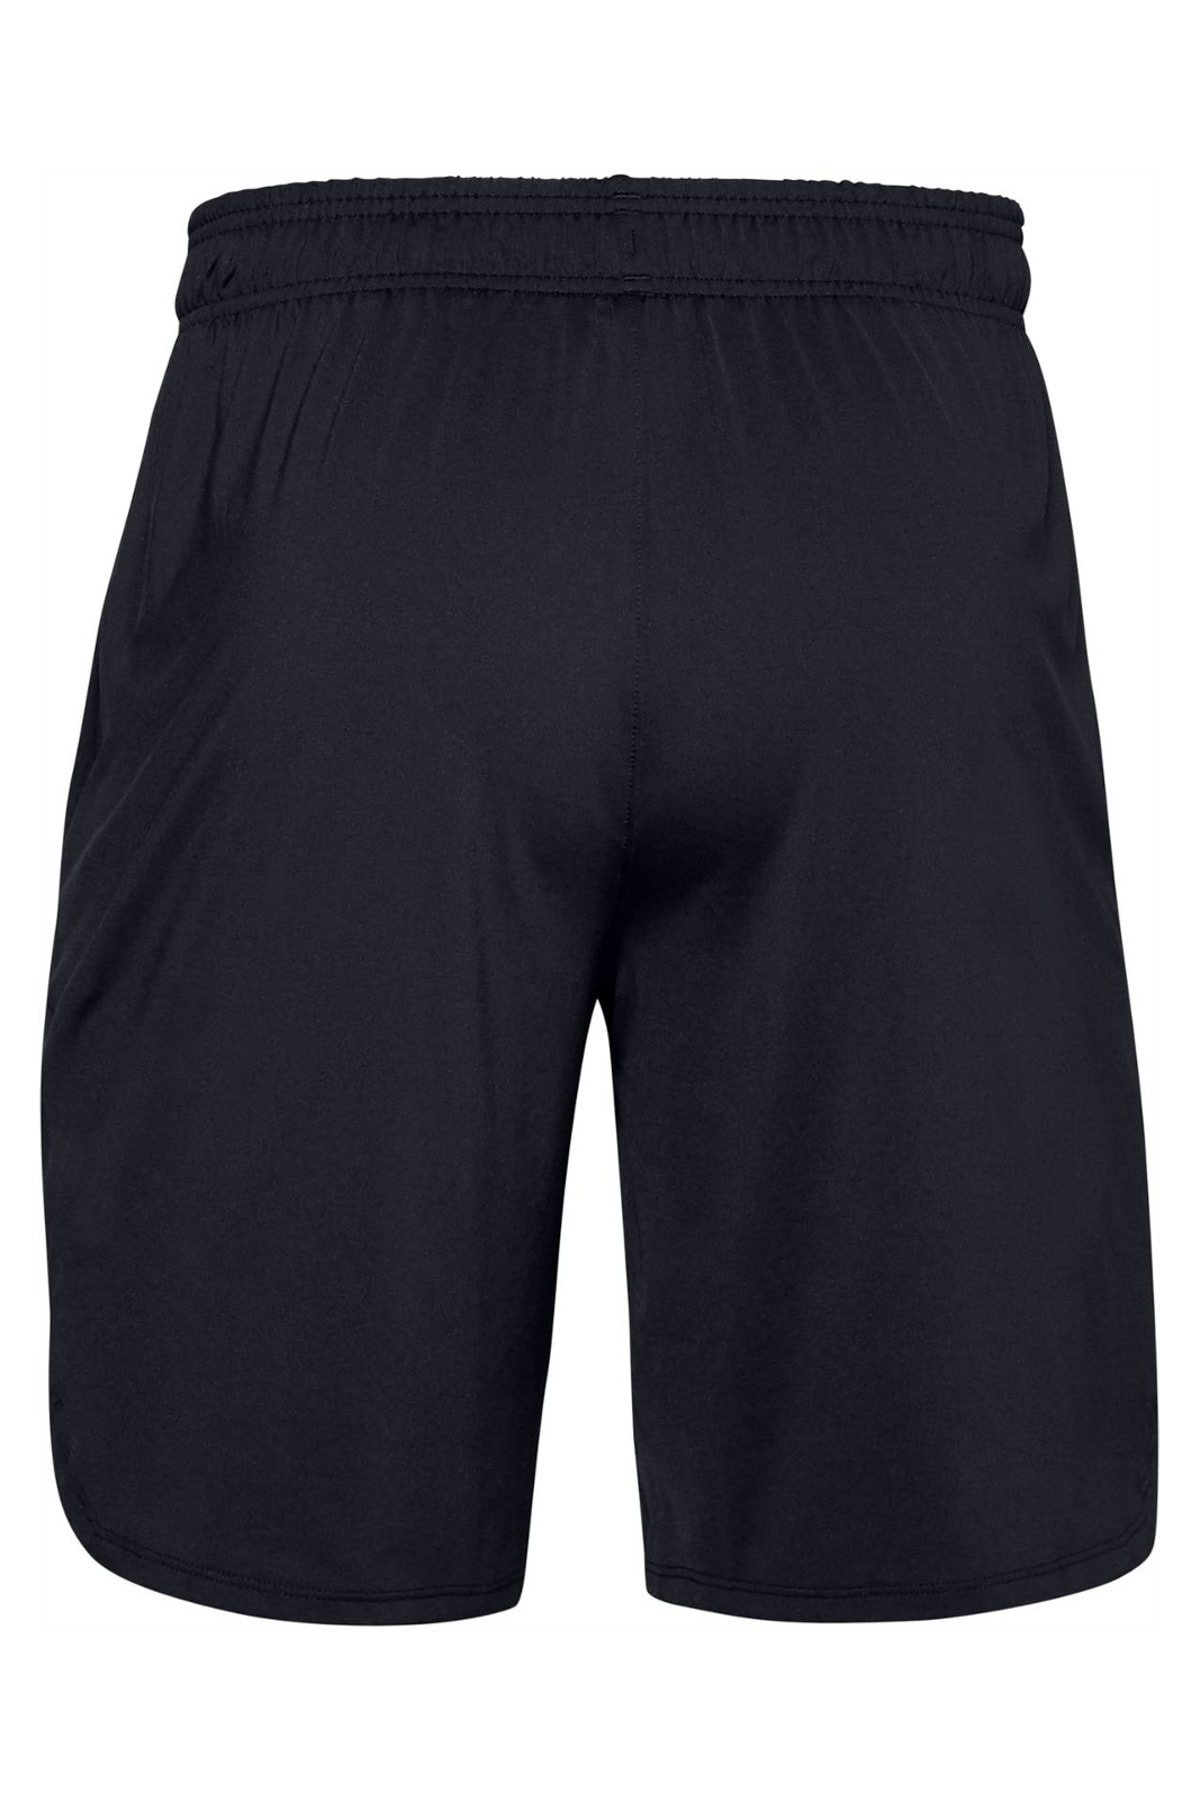 Under Armour Erkek Spor Şort - Ua Train Stretch Shorts - 1356858-001 2